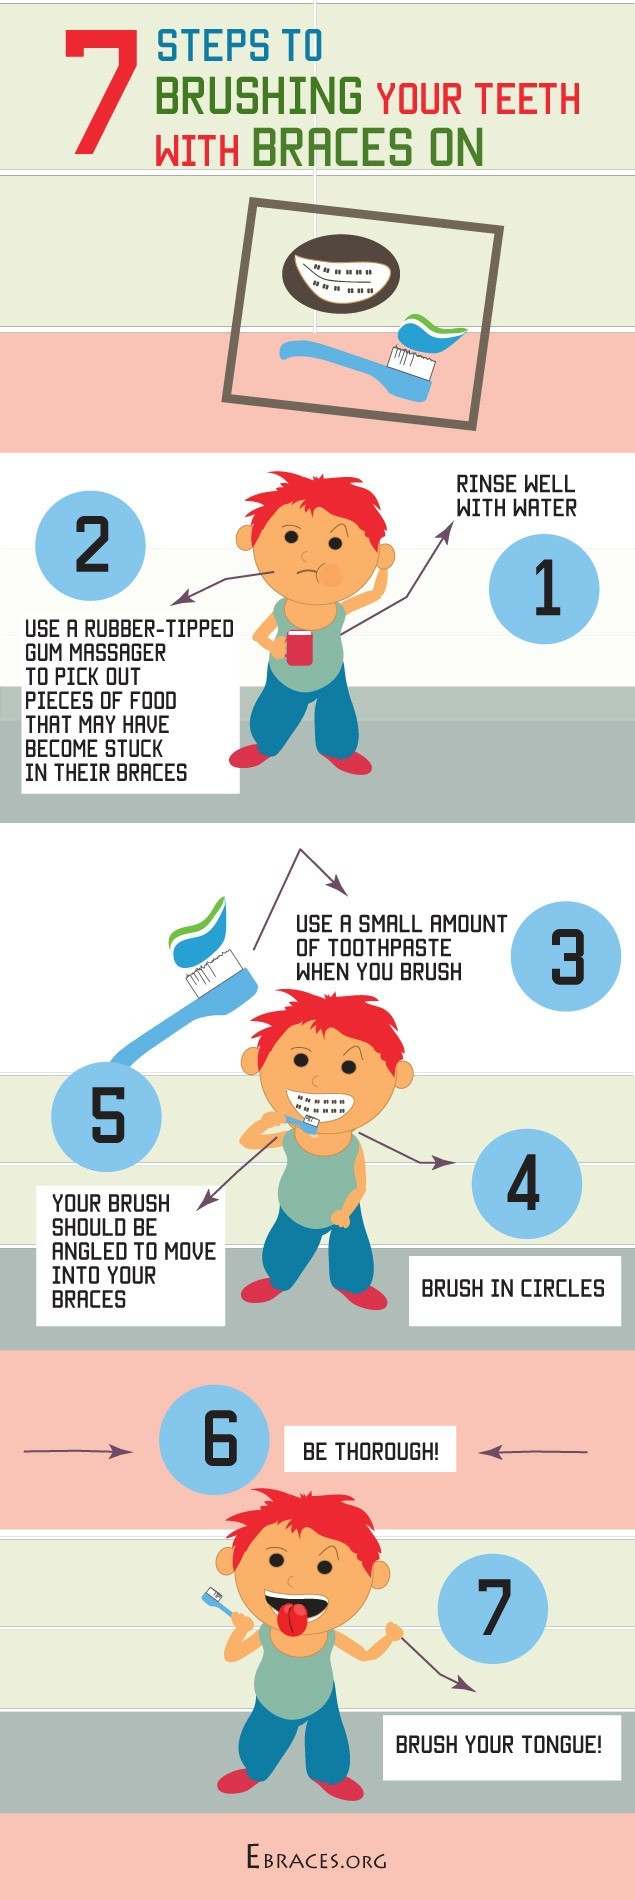 how to keep your teeth clean with braces